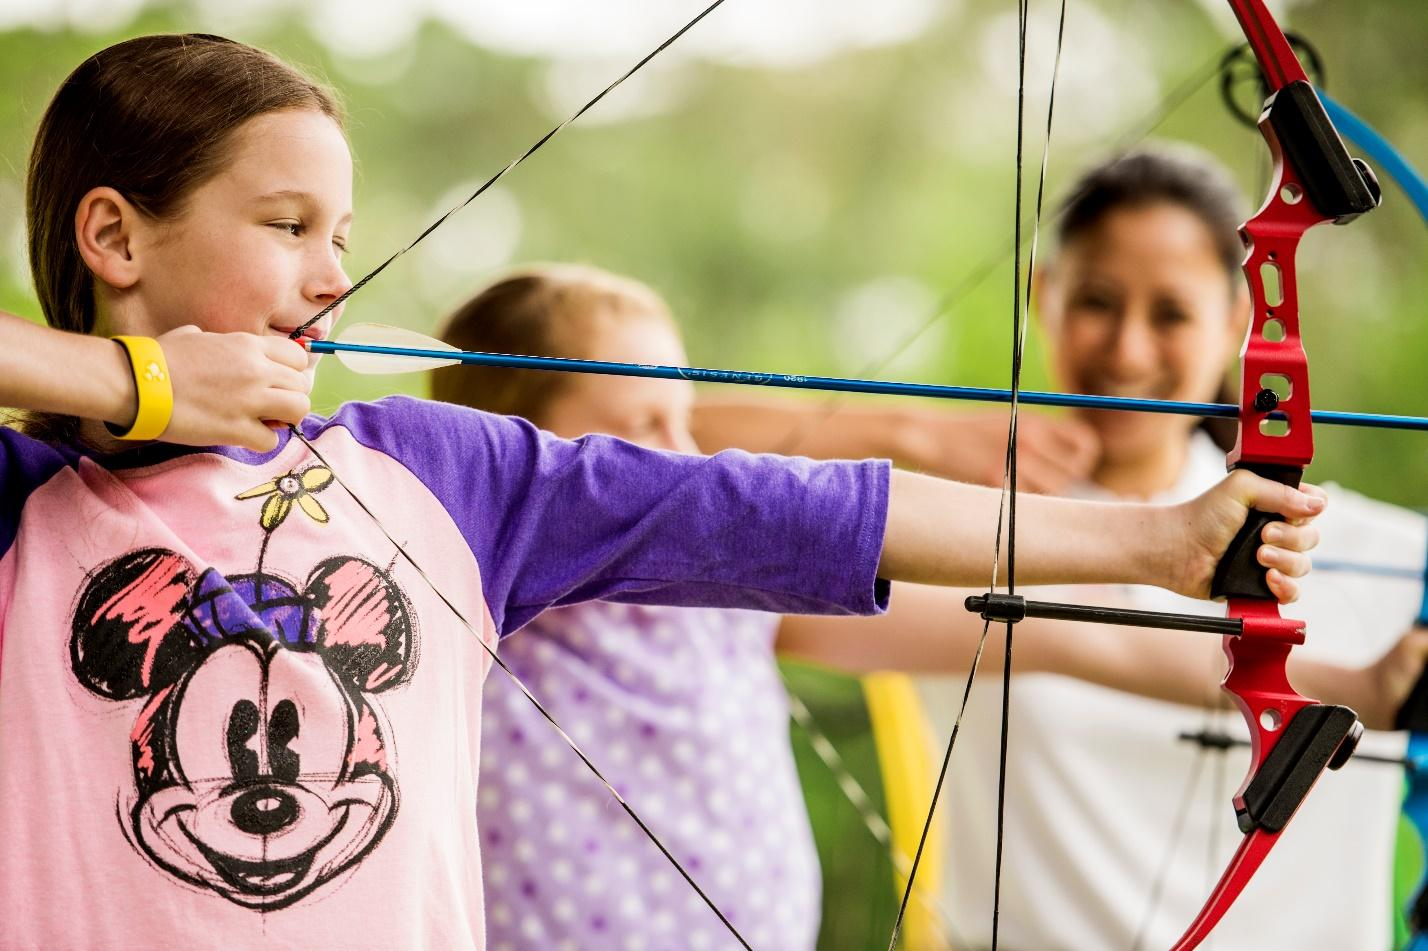 Young girl with Minnie Mouse on her shirt draws back an arrow during Disney archery.